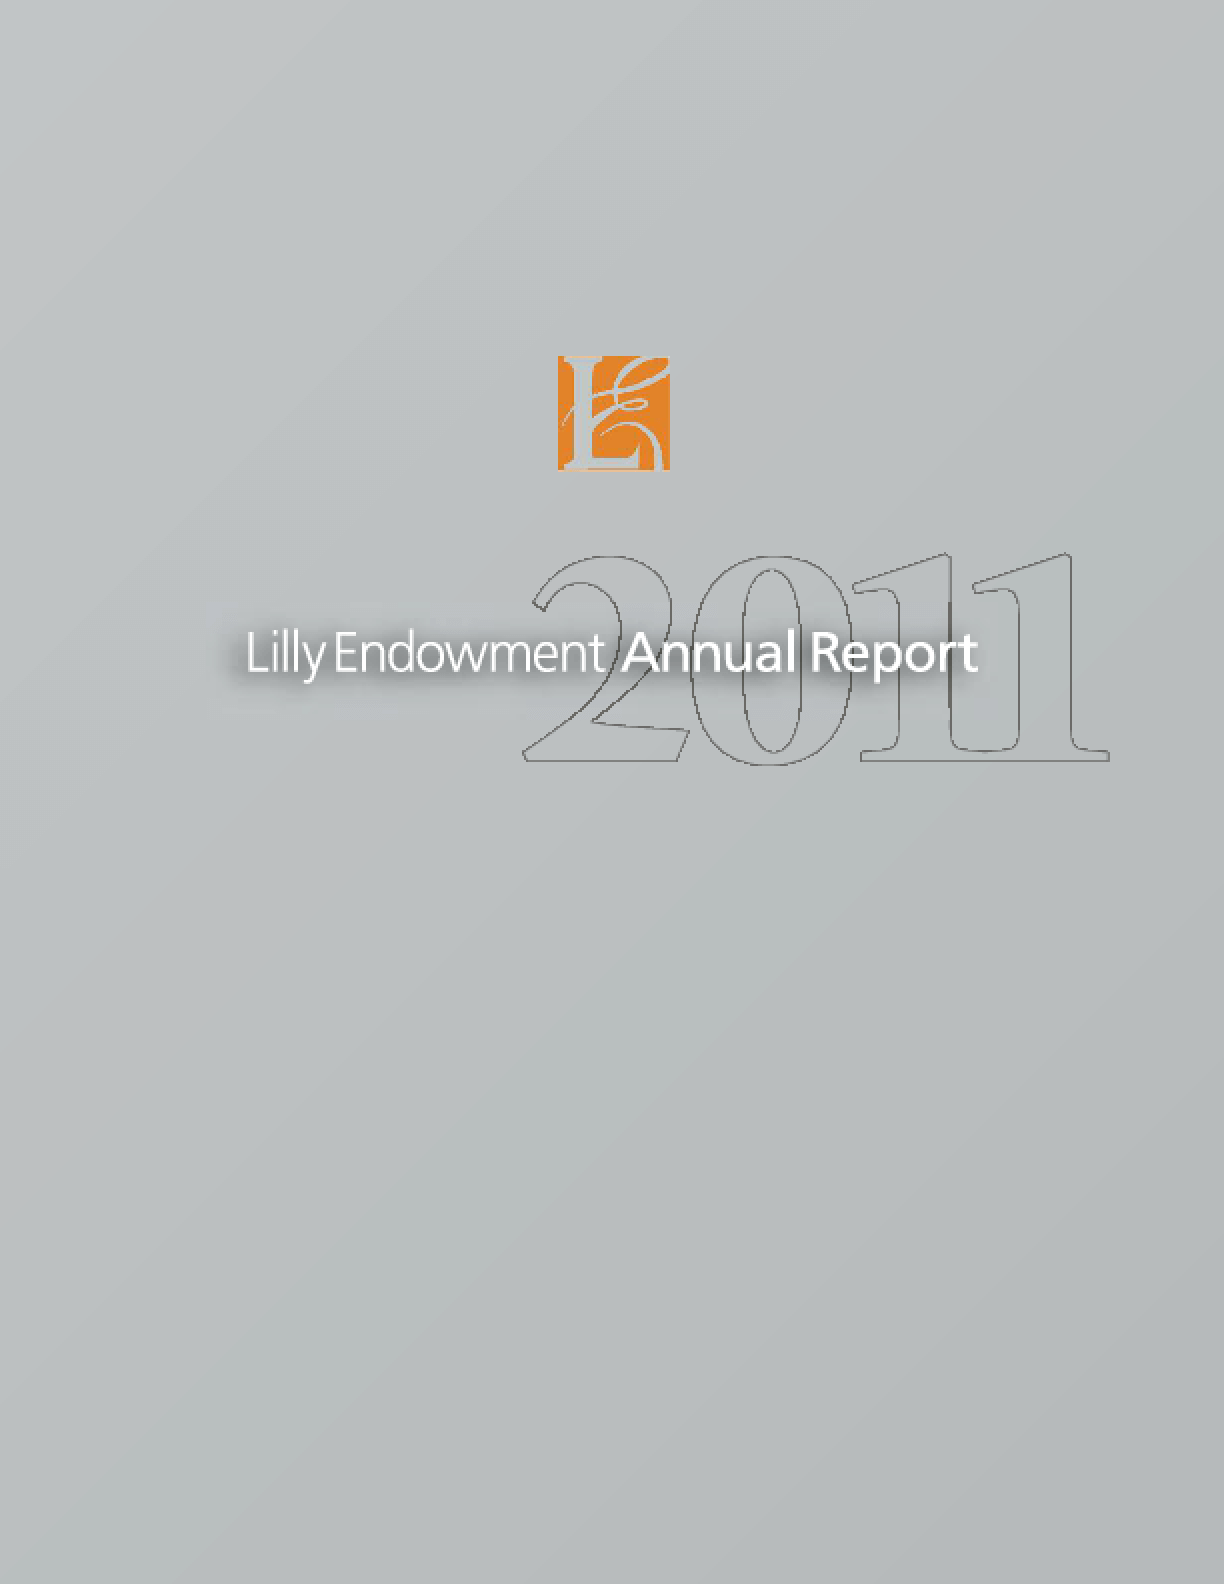 Lilly Endowment, Inc. 2011 Annual Report